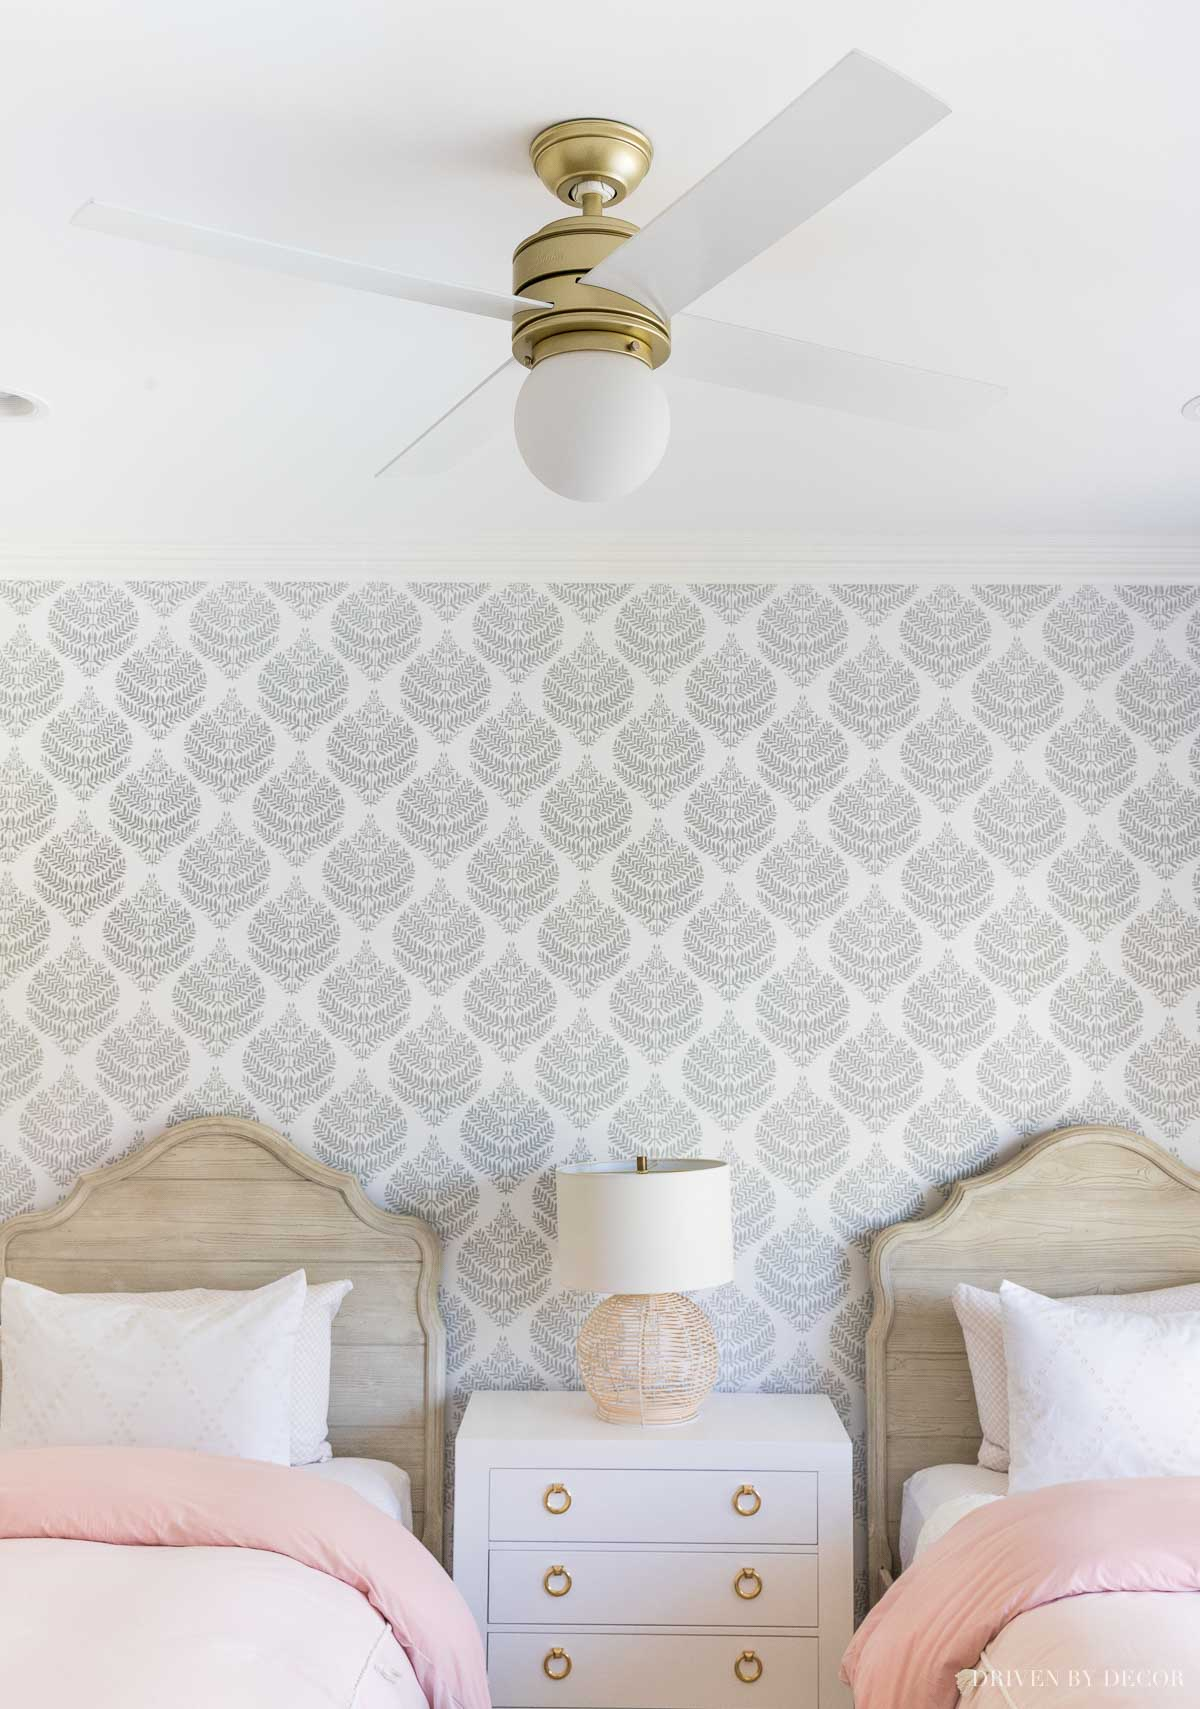 Love this stylish ceiling fan I added to my girls' bedroom